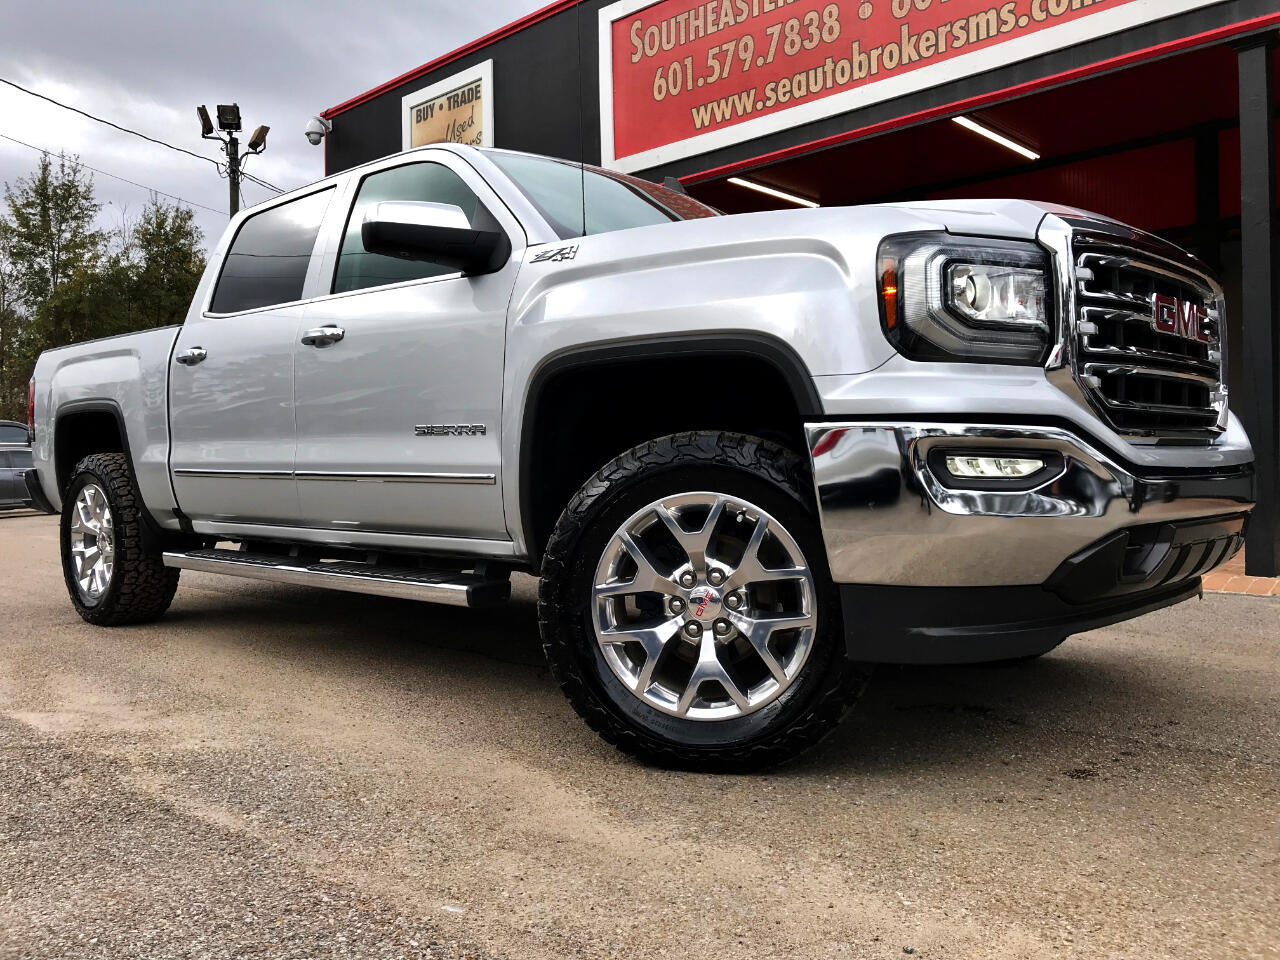 2017 GMC Sierra 1500 SLT CREW CAB SHORT BED 4WD LEVELED